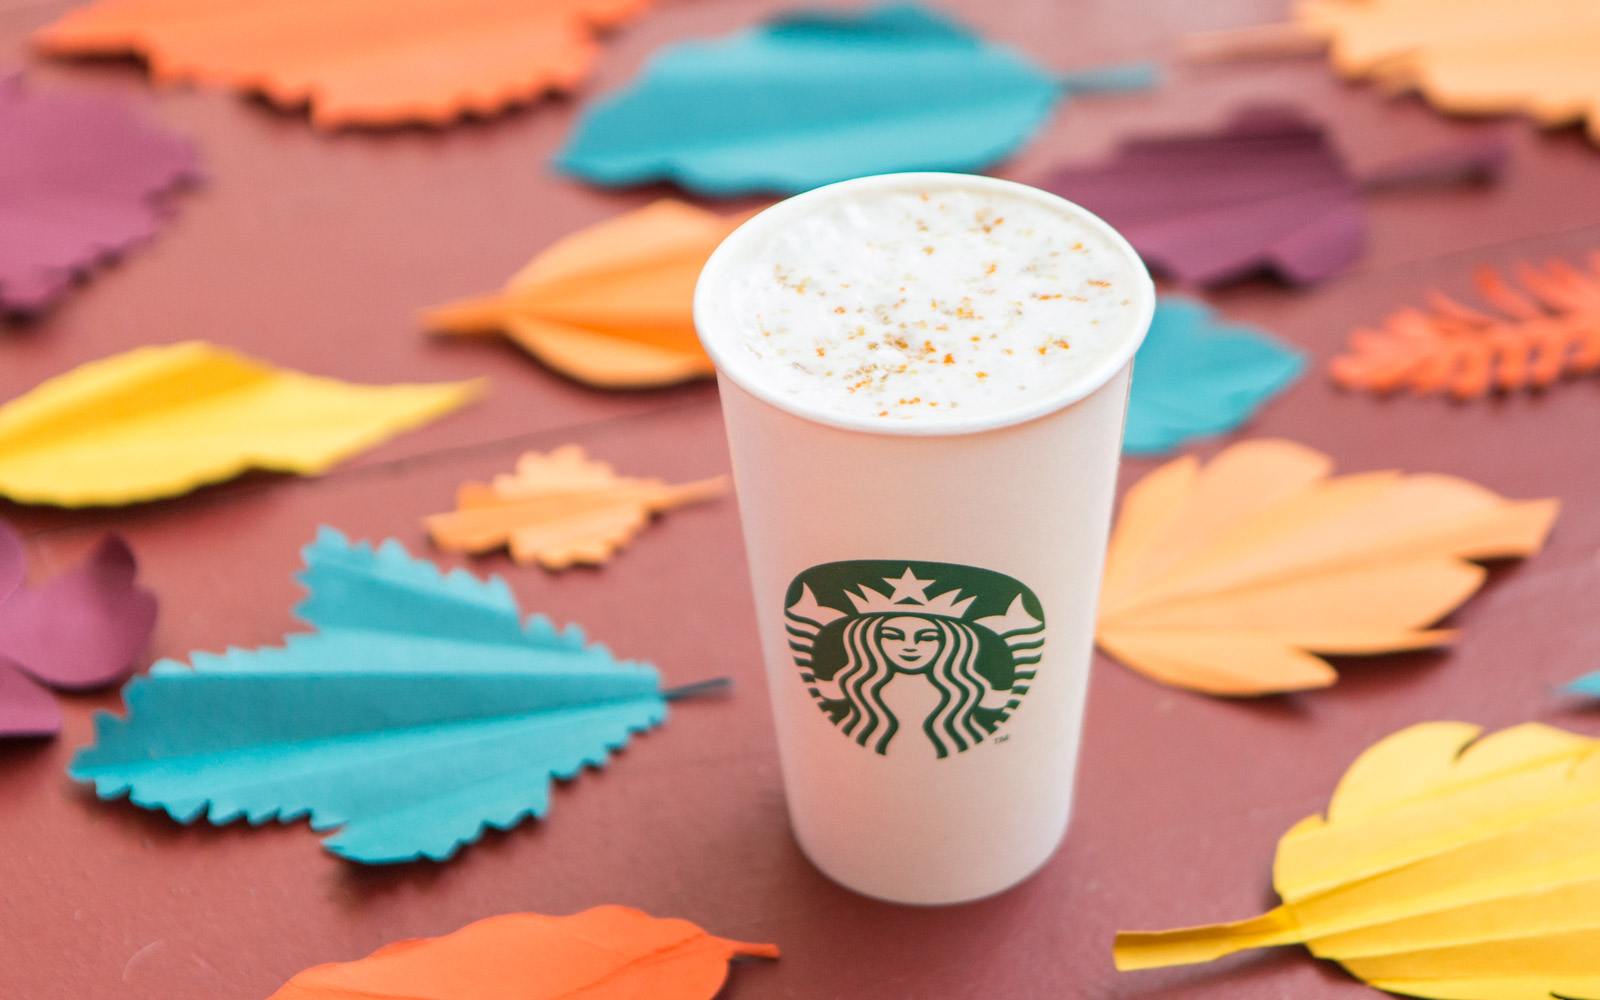 Move Over, Pumpkin Spice Lattes: Starbucks Has a New Fall Drink